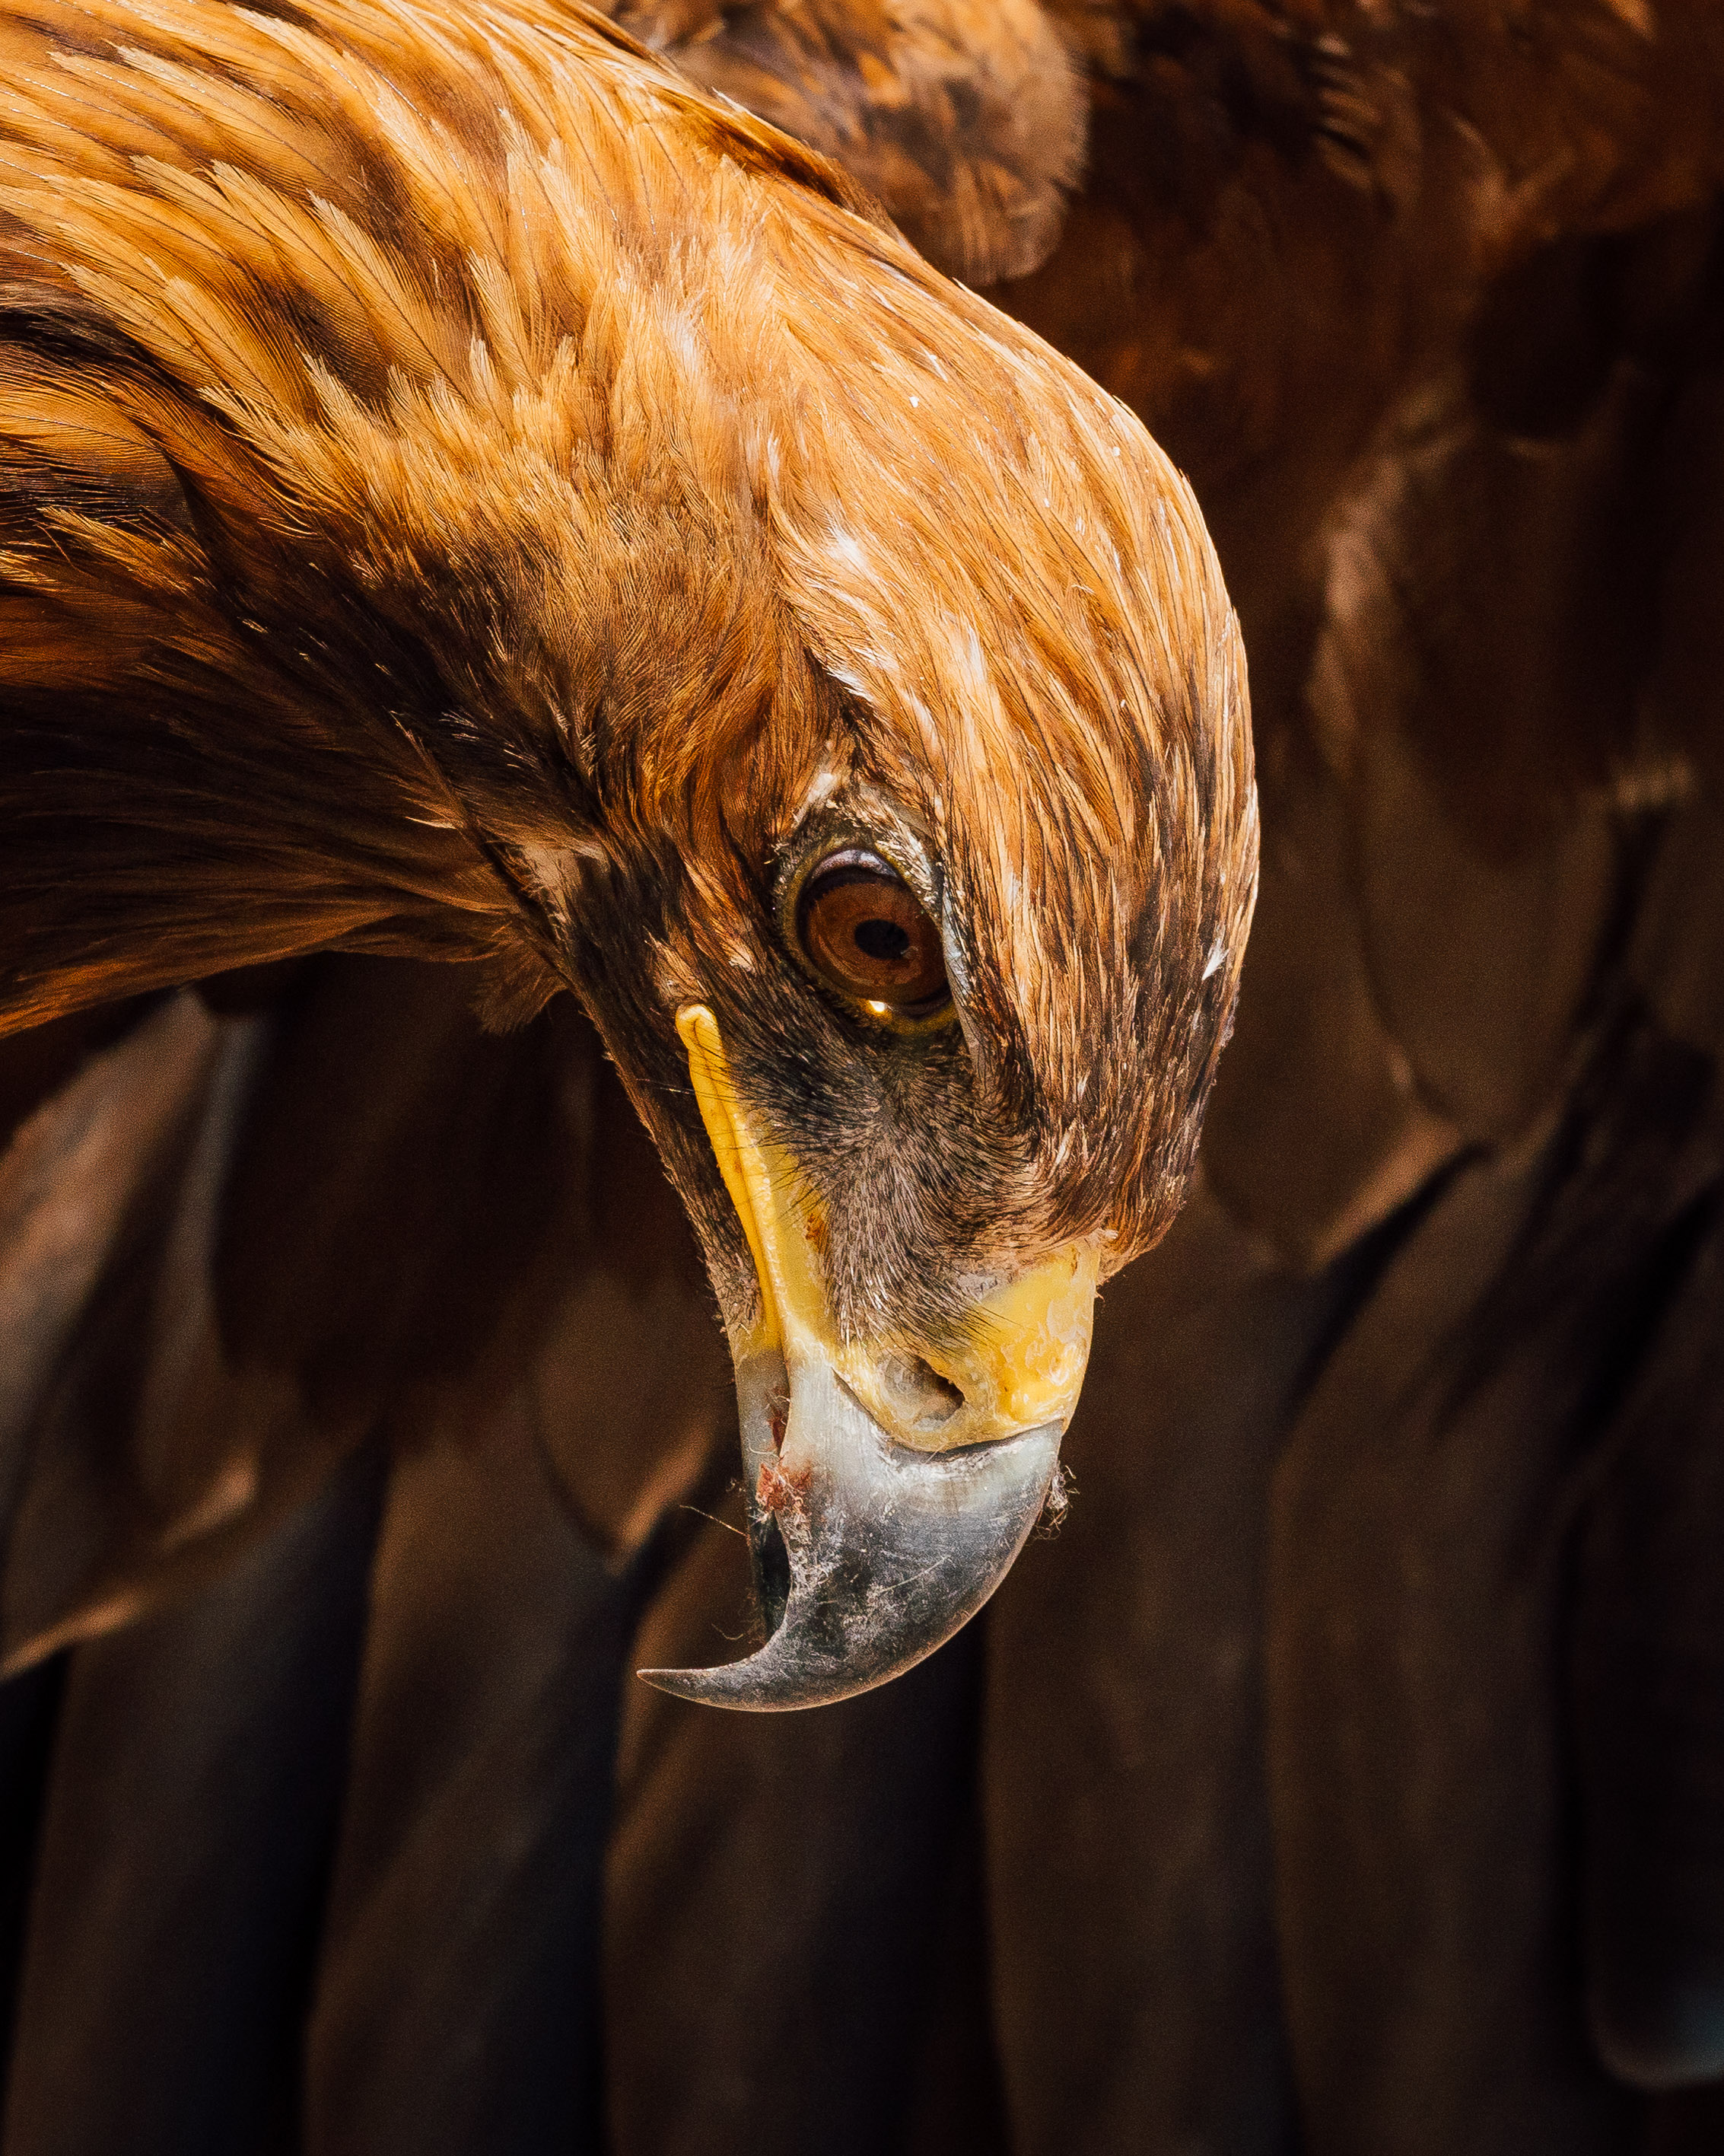 Bird of Prey - An eagle that lives with a local Kyrgyz trainer. Photo: Matt Horspool.